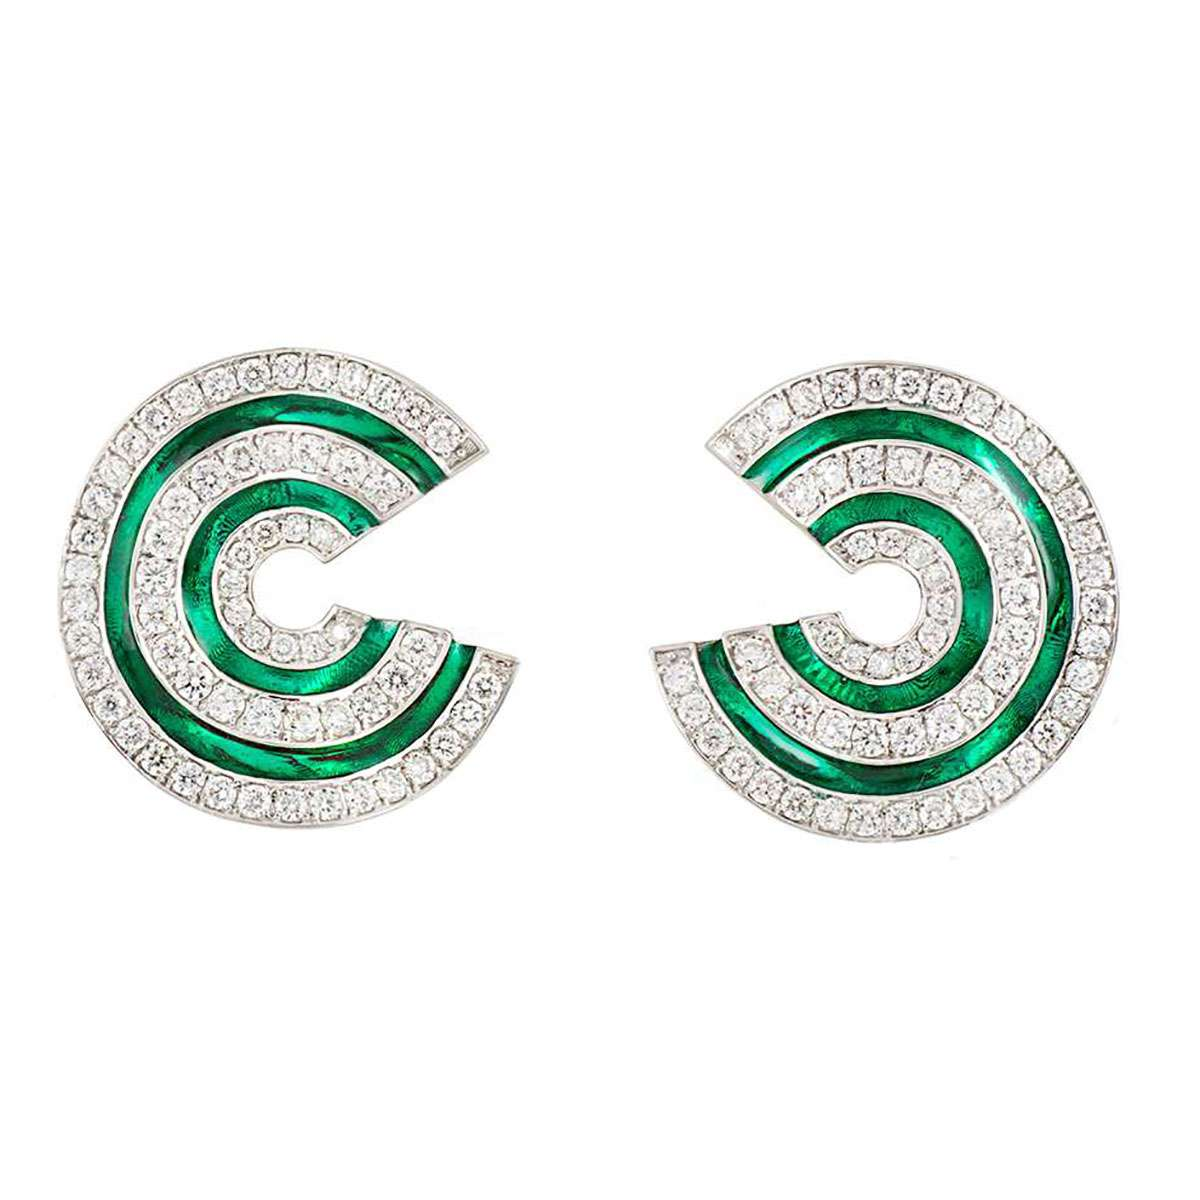 Diamond and Enamel Earrings